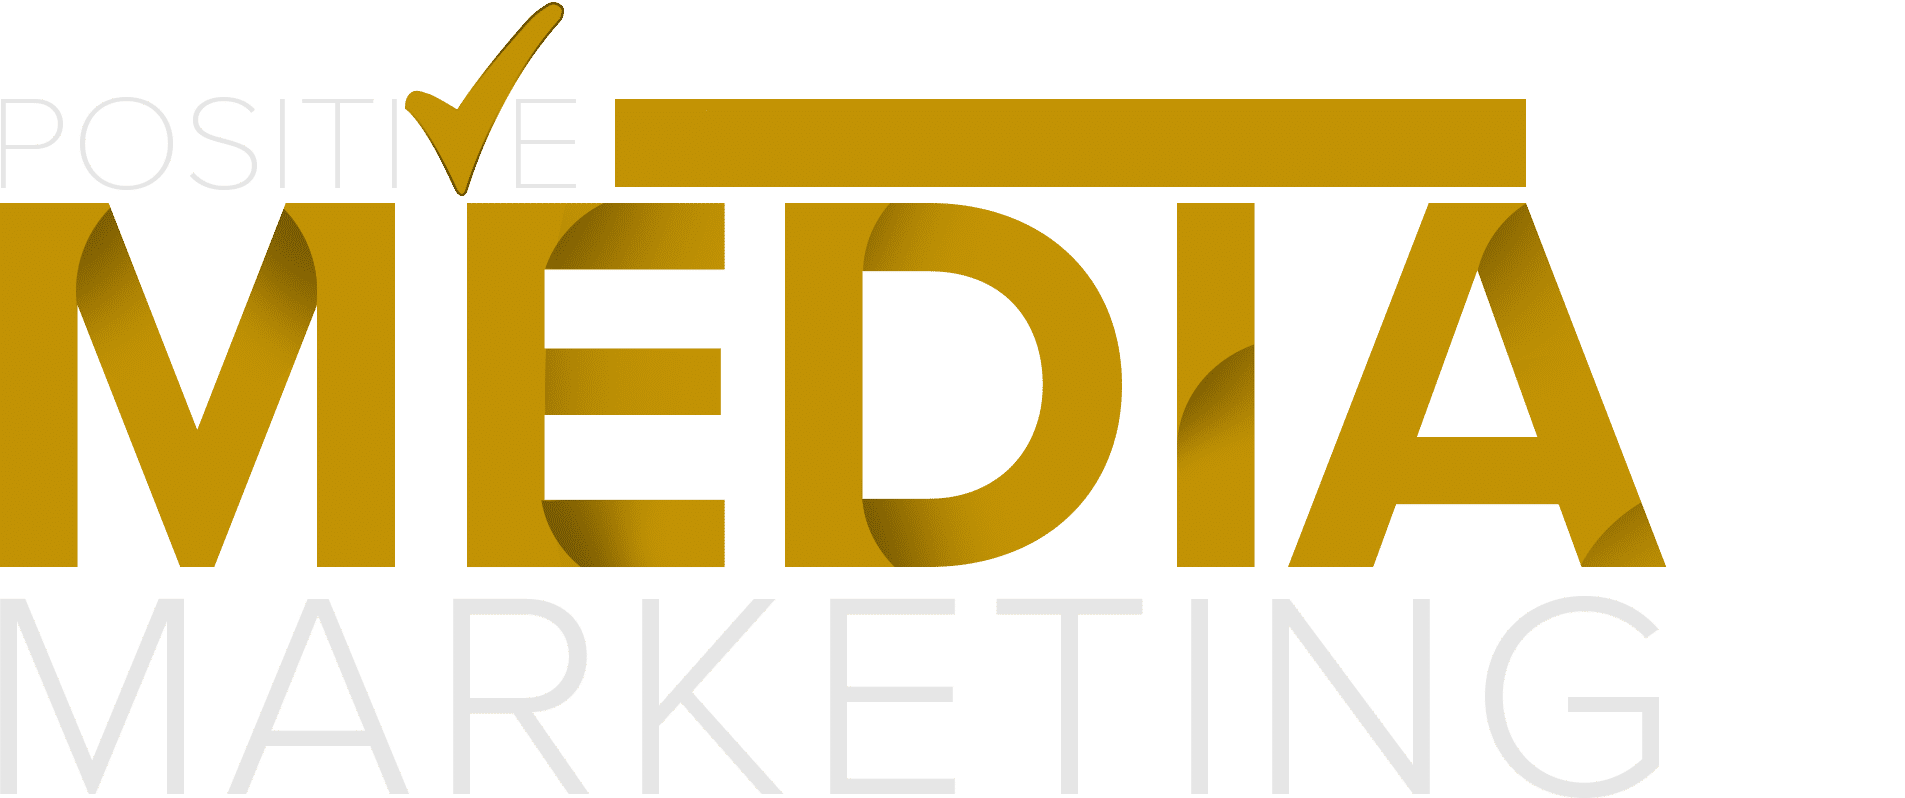 Positive Media Marketing